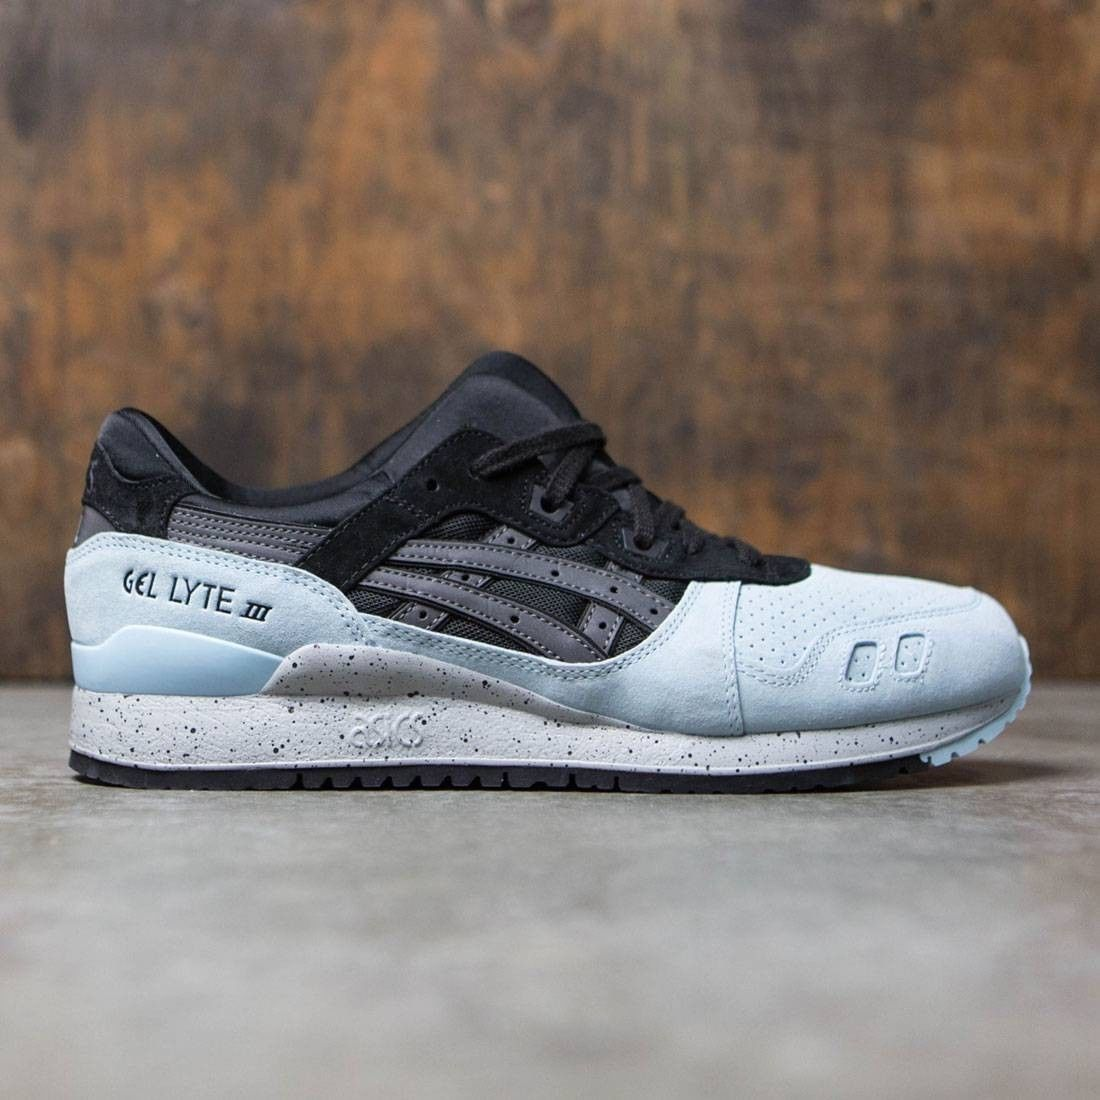 Asics Gel Lyte III Black & Powder Blue scarpa